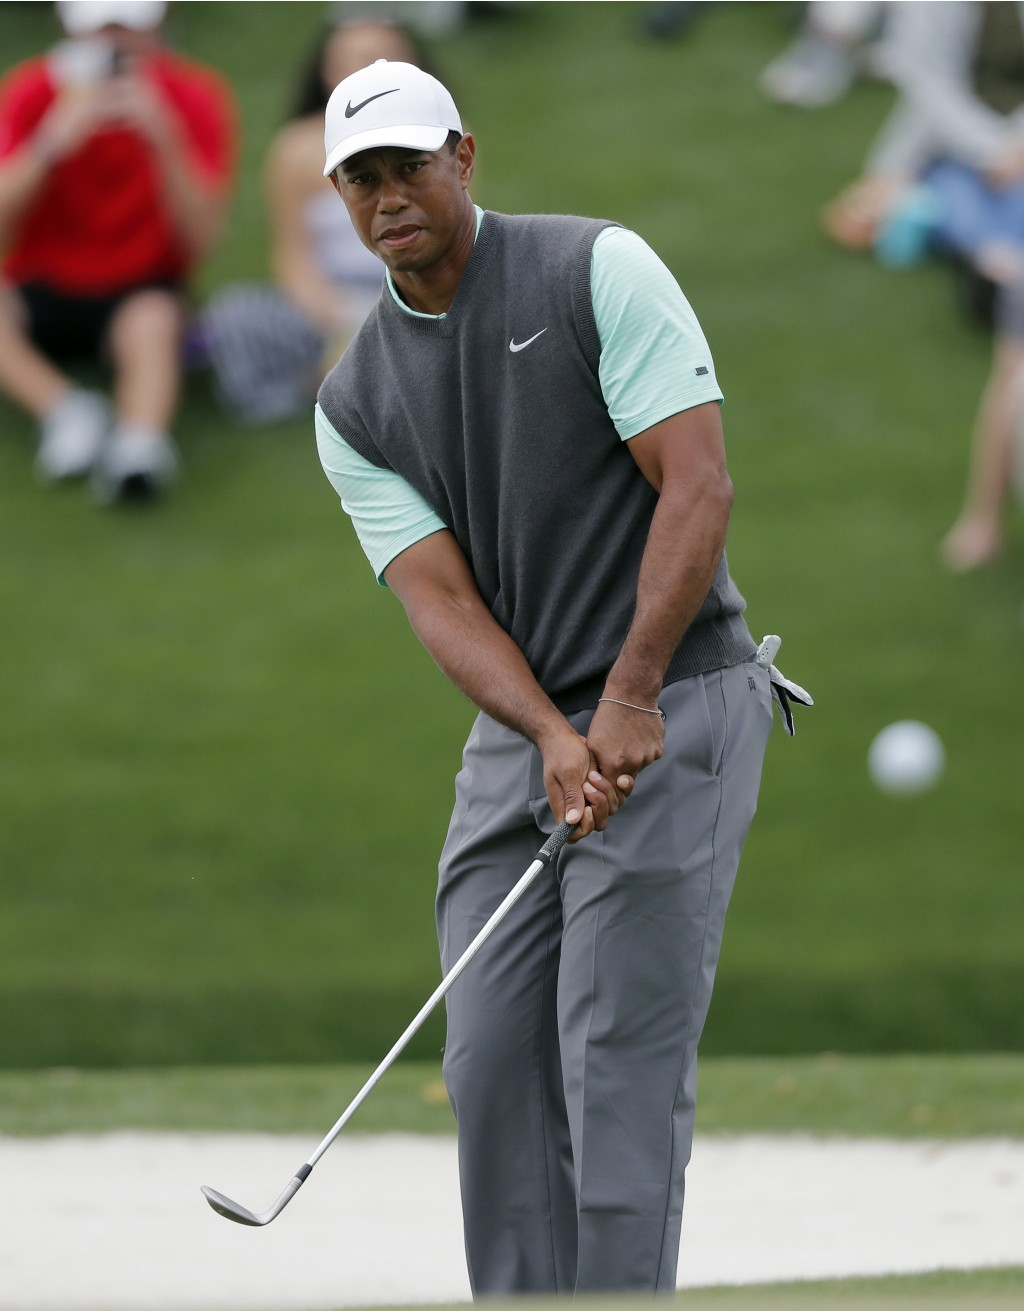 Tiger Woods chips onto the third green during the third round of The Players Championship golf tournament Saturday, March 16, 2019, in Ponte Vedra Bea...